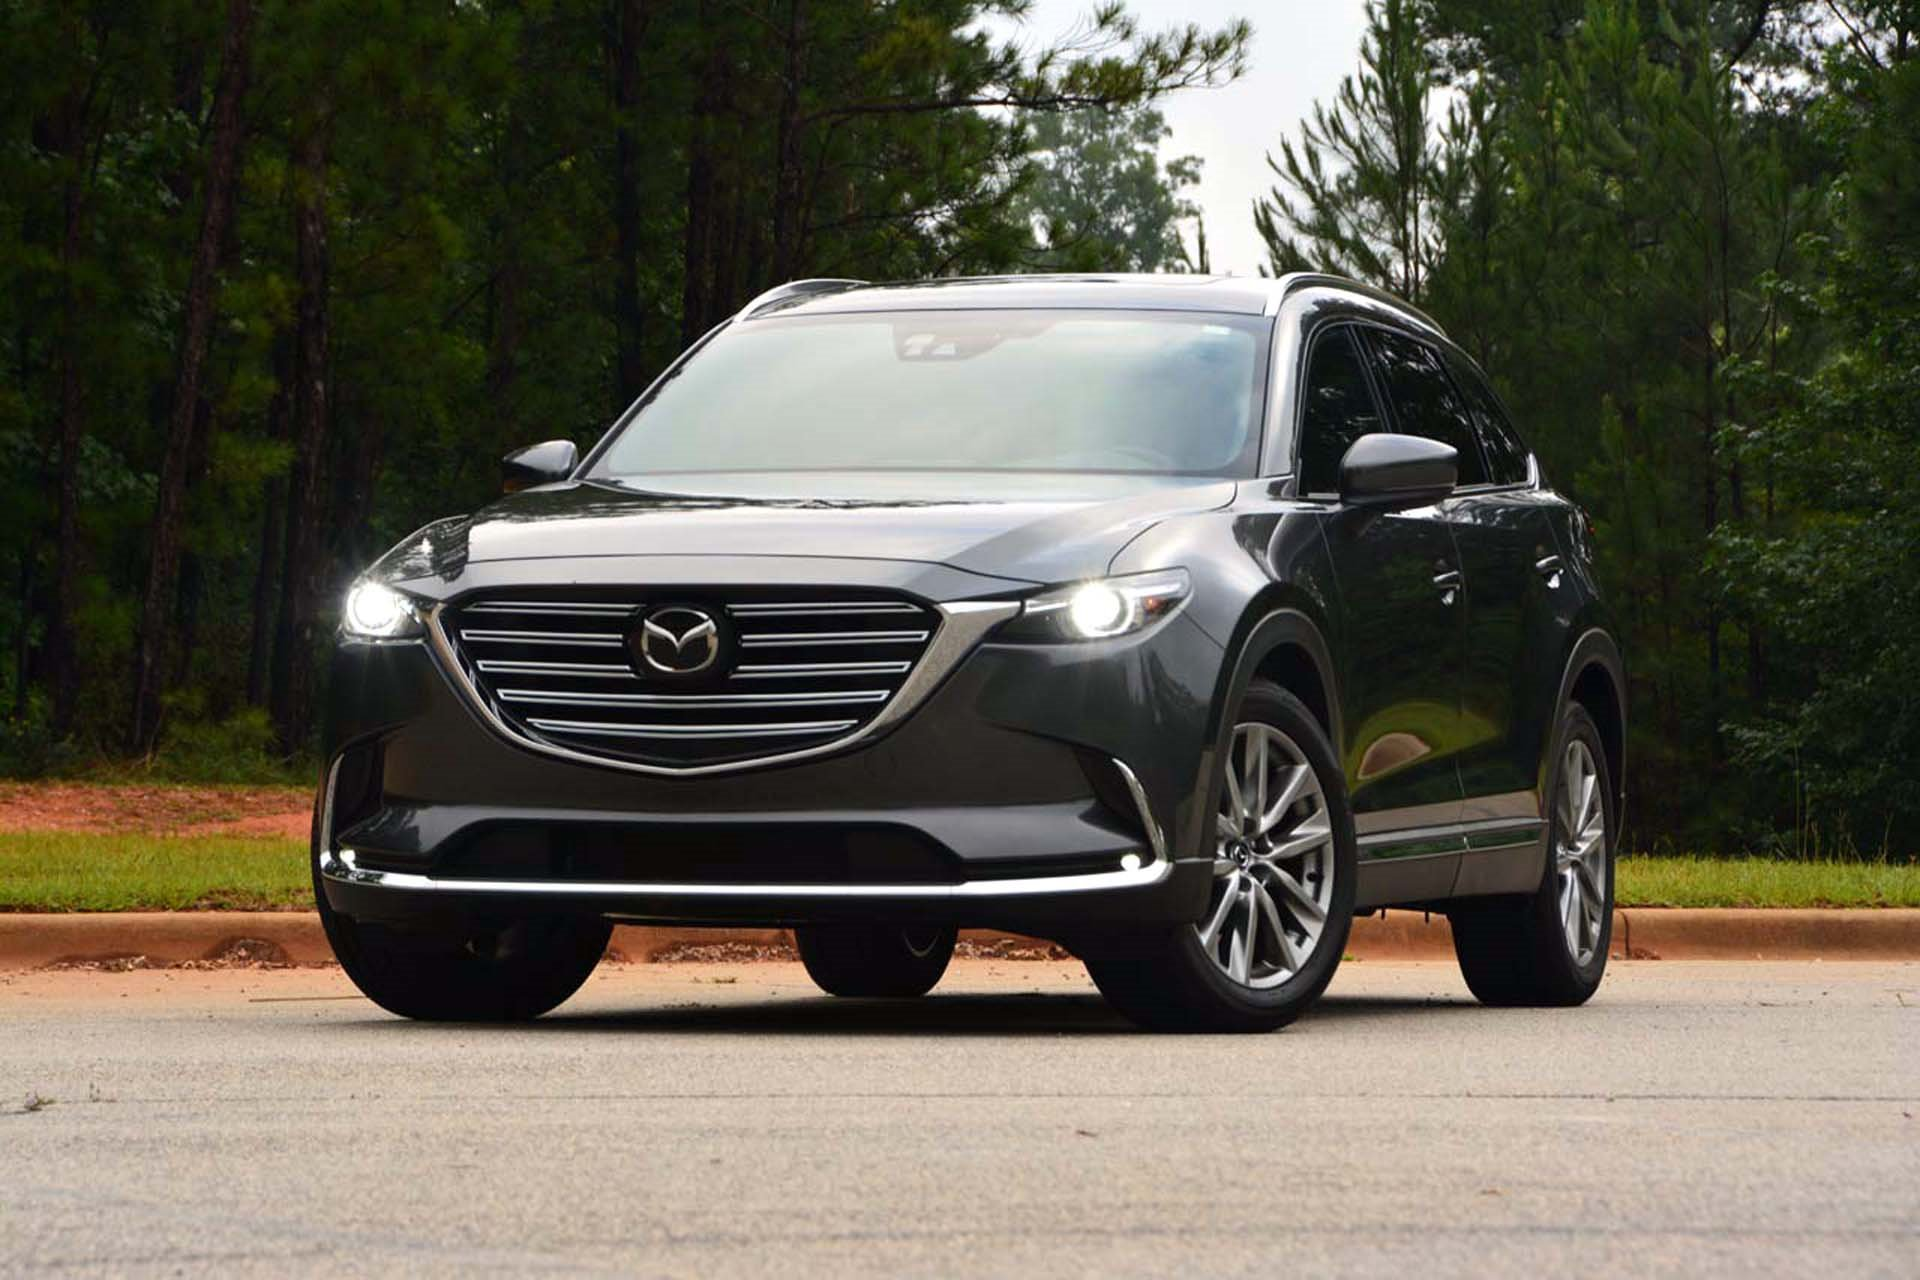 New 2019 Mazda-CX-9 Touring CX-9 Touring for sale $37,130 at M and V Leasing in Brooklyn NY 11223 1